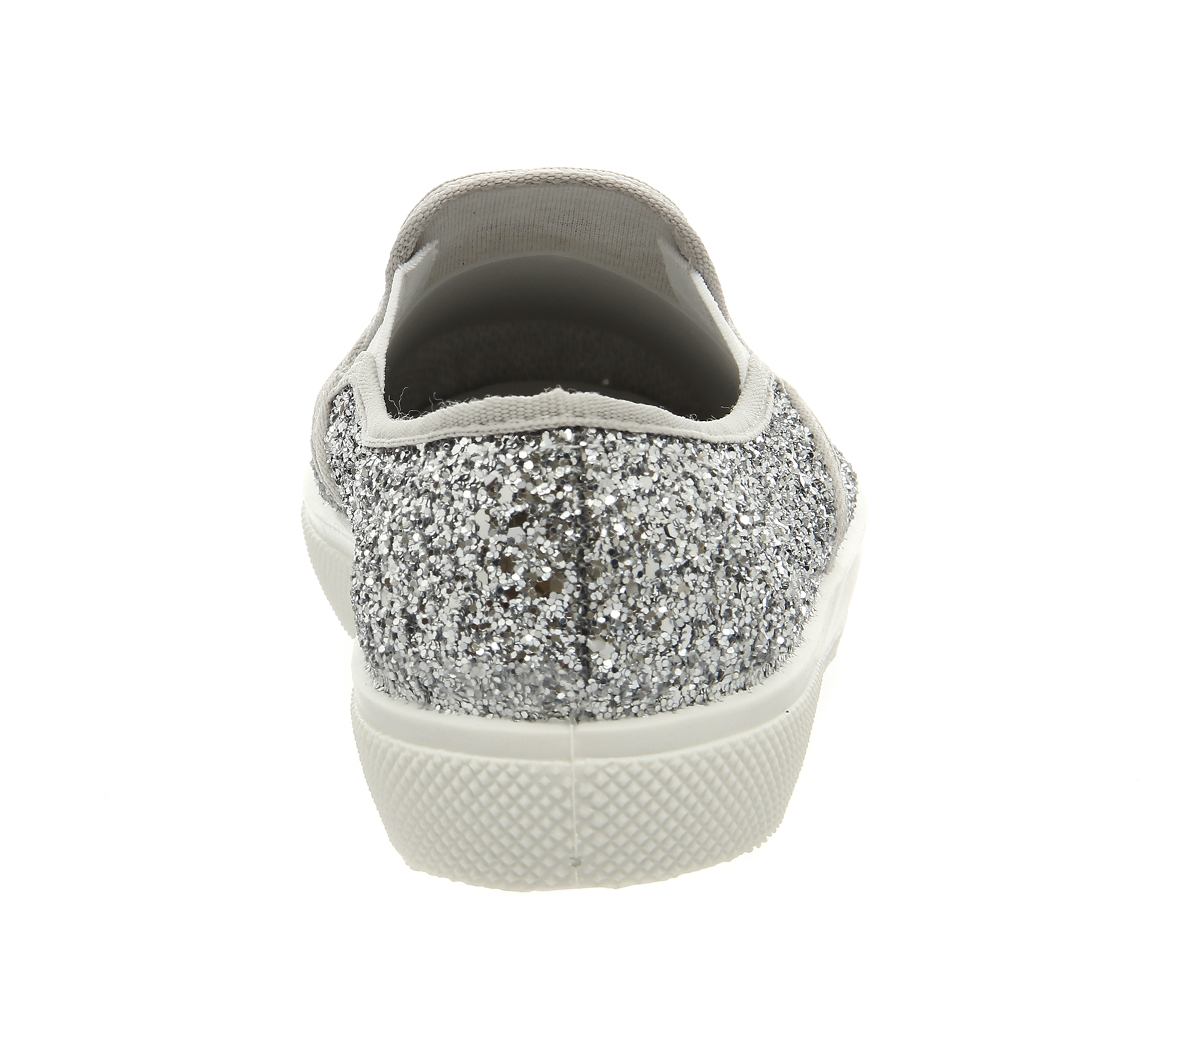 bedafb0a7d6fff Womens Office Kicker Slip On Shoes Silver Glitter Flats